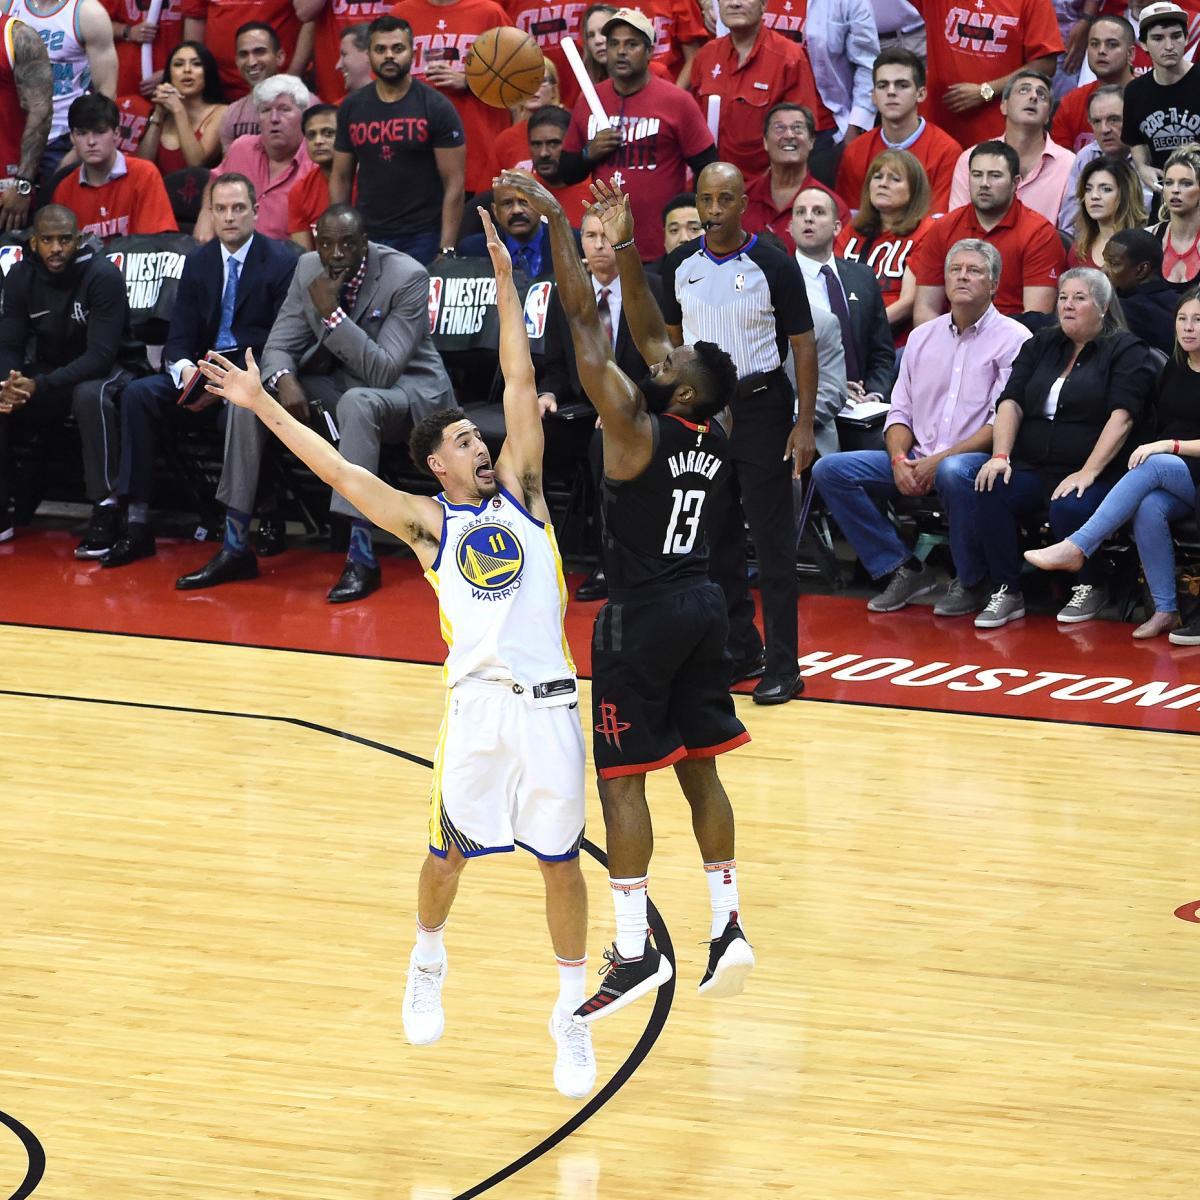 Houston Vs Warriors Full Game Highlights: Report: Rockets' Audit Of 2018 WCF Game 7 Vs. Warriors